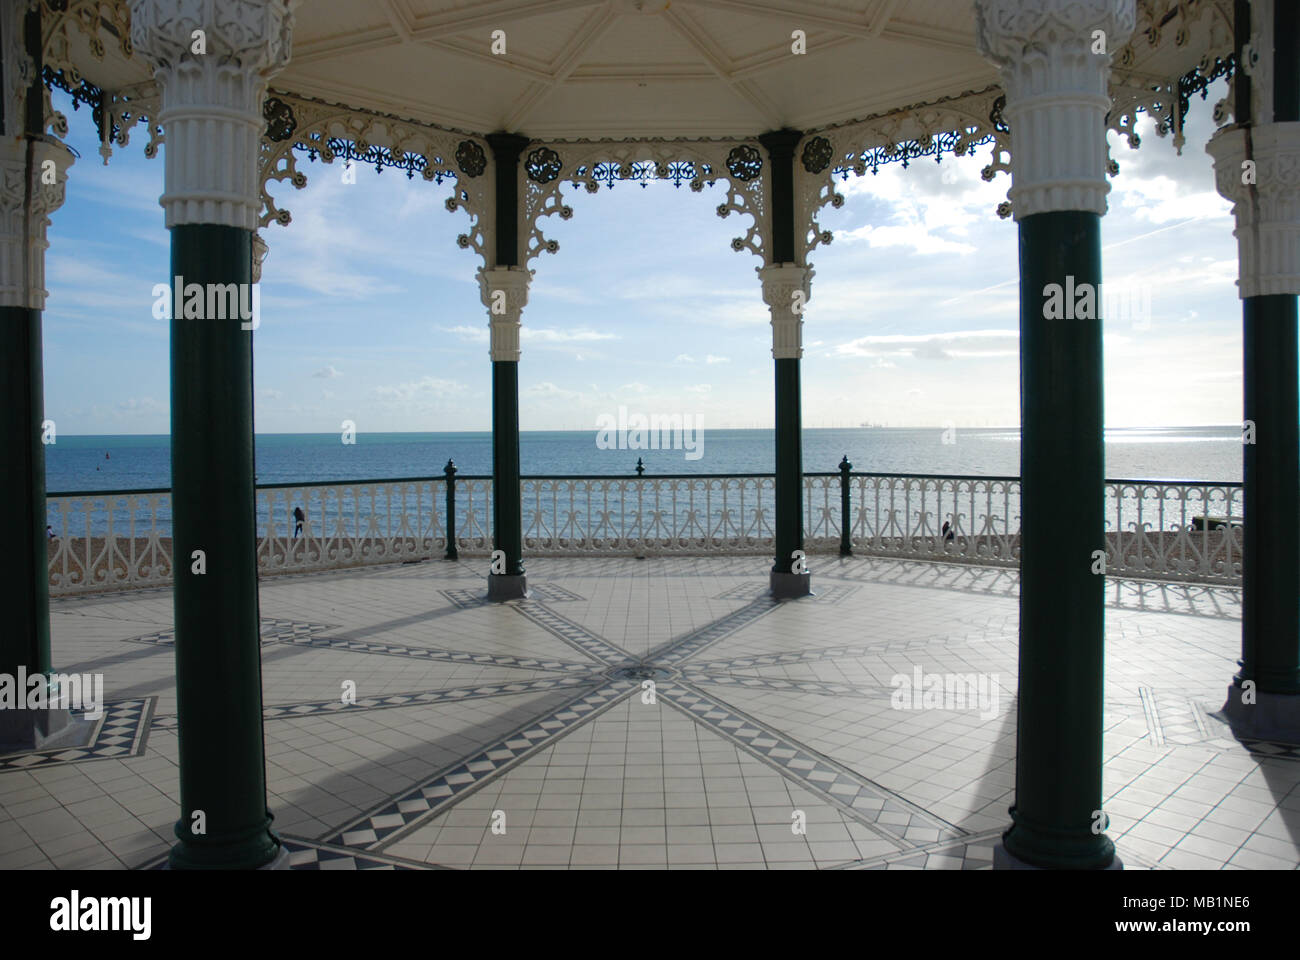 The view of the sea from the Brighton Bandstand - Stock Image